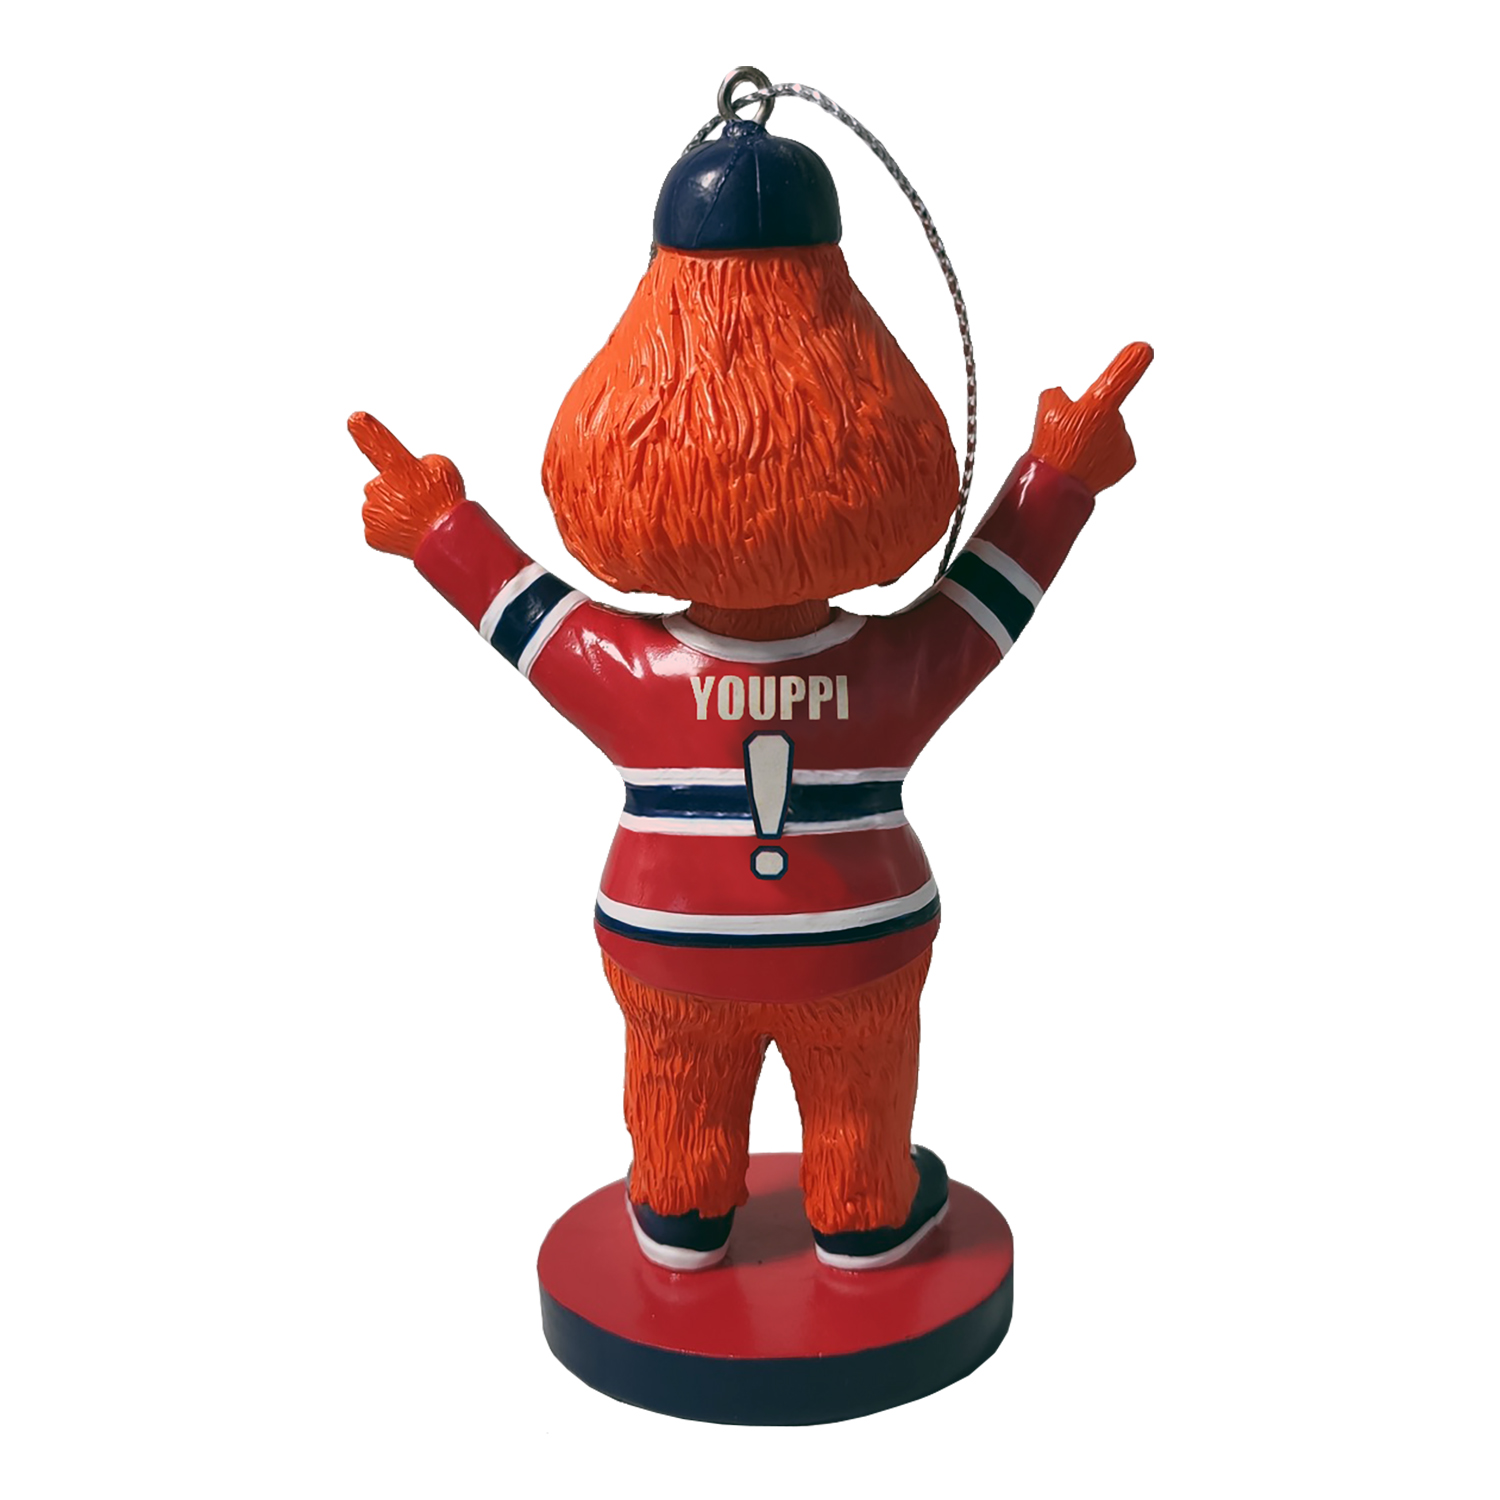 Montreal Canadiens Youppi Ornament Gallery